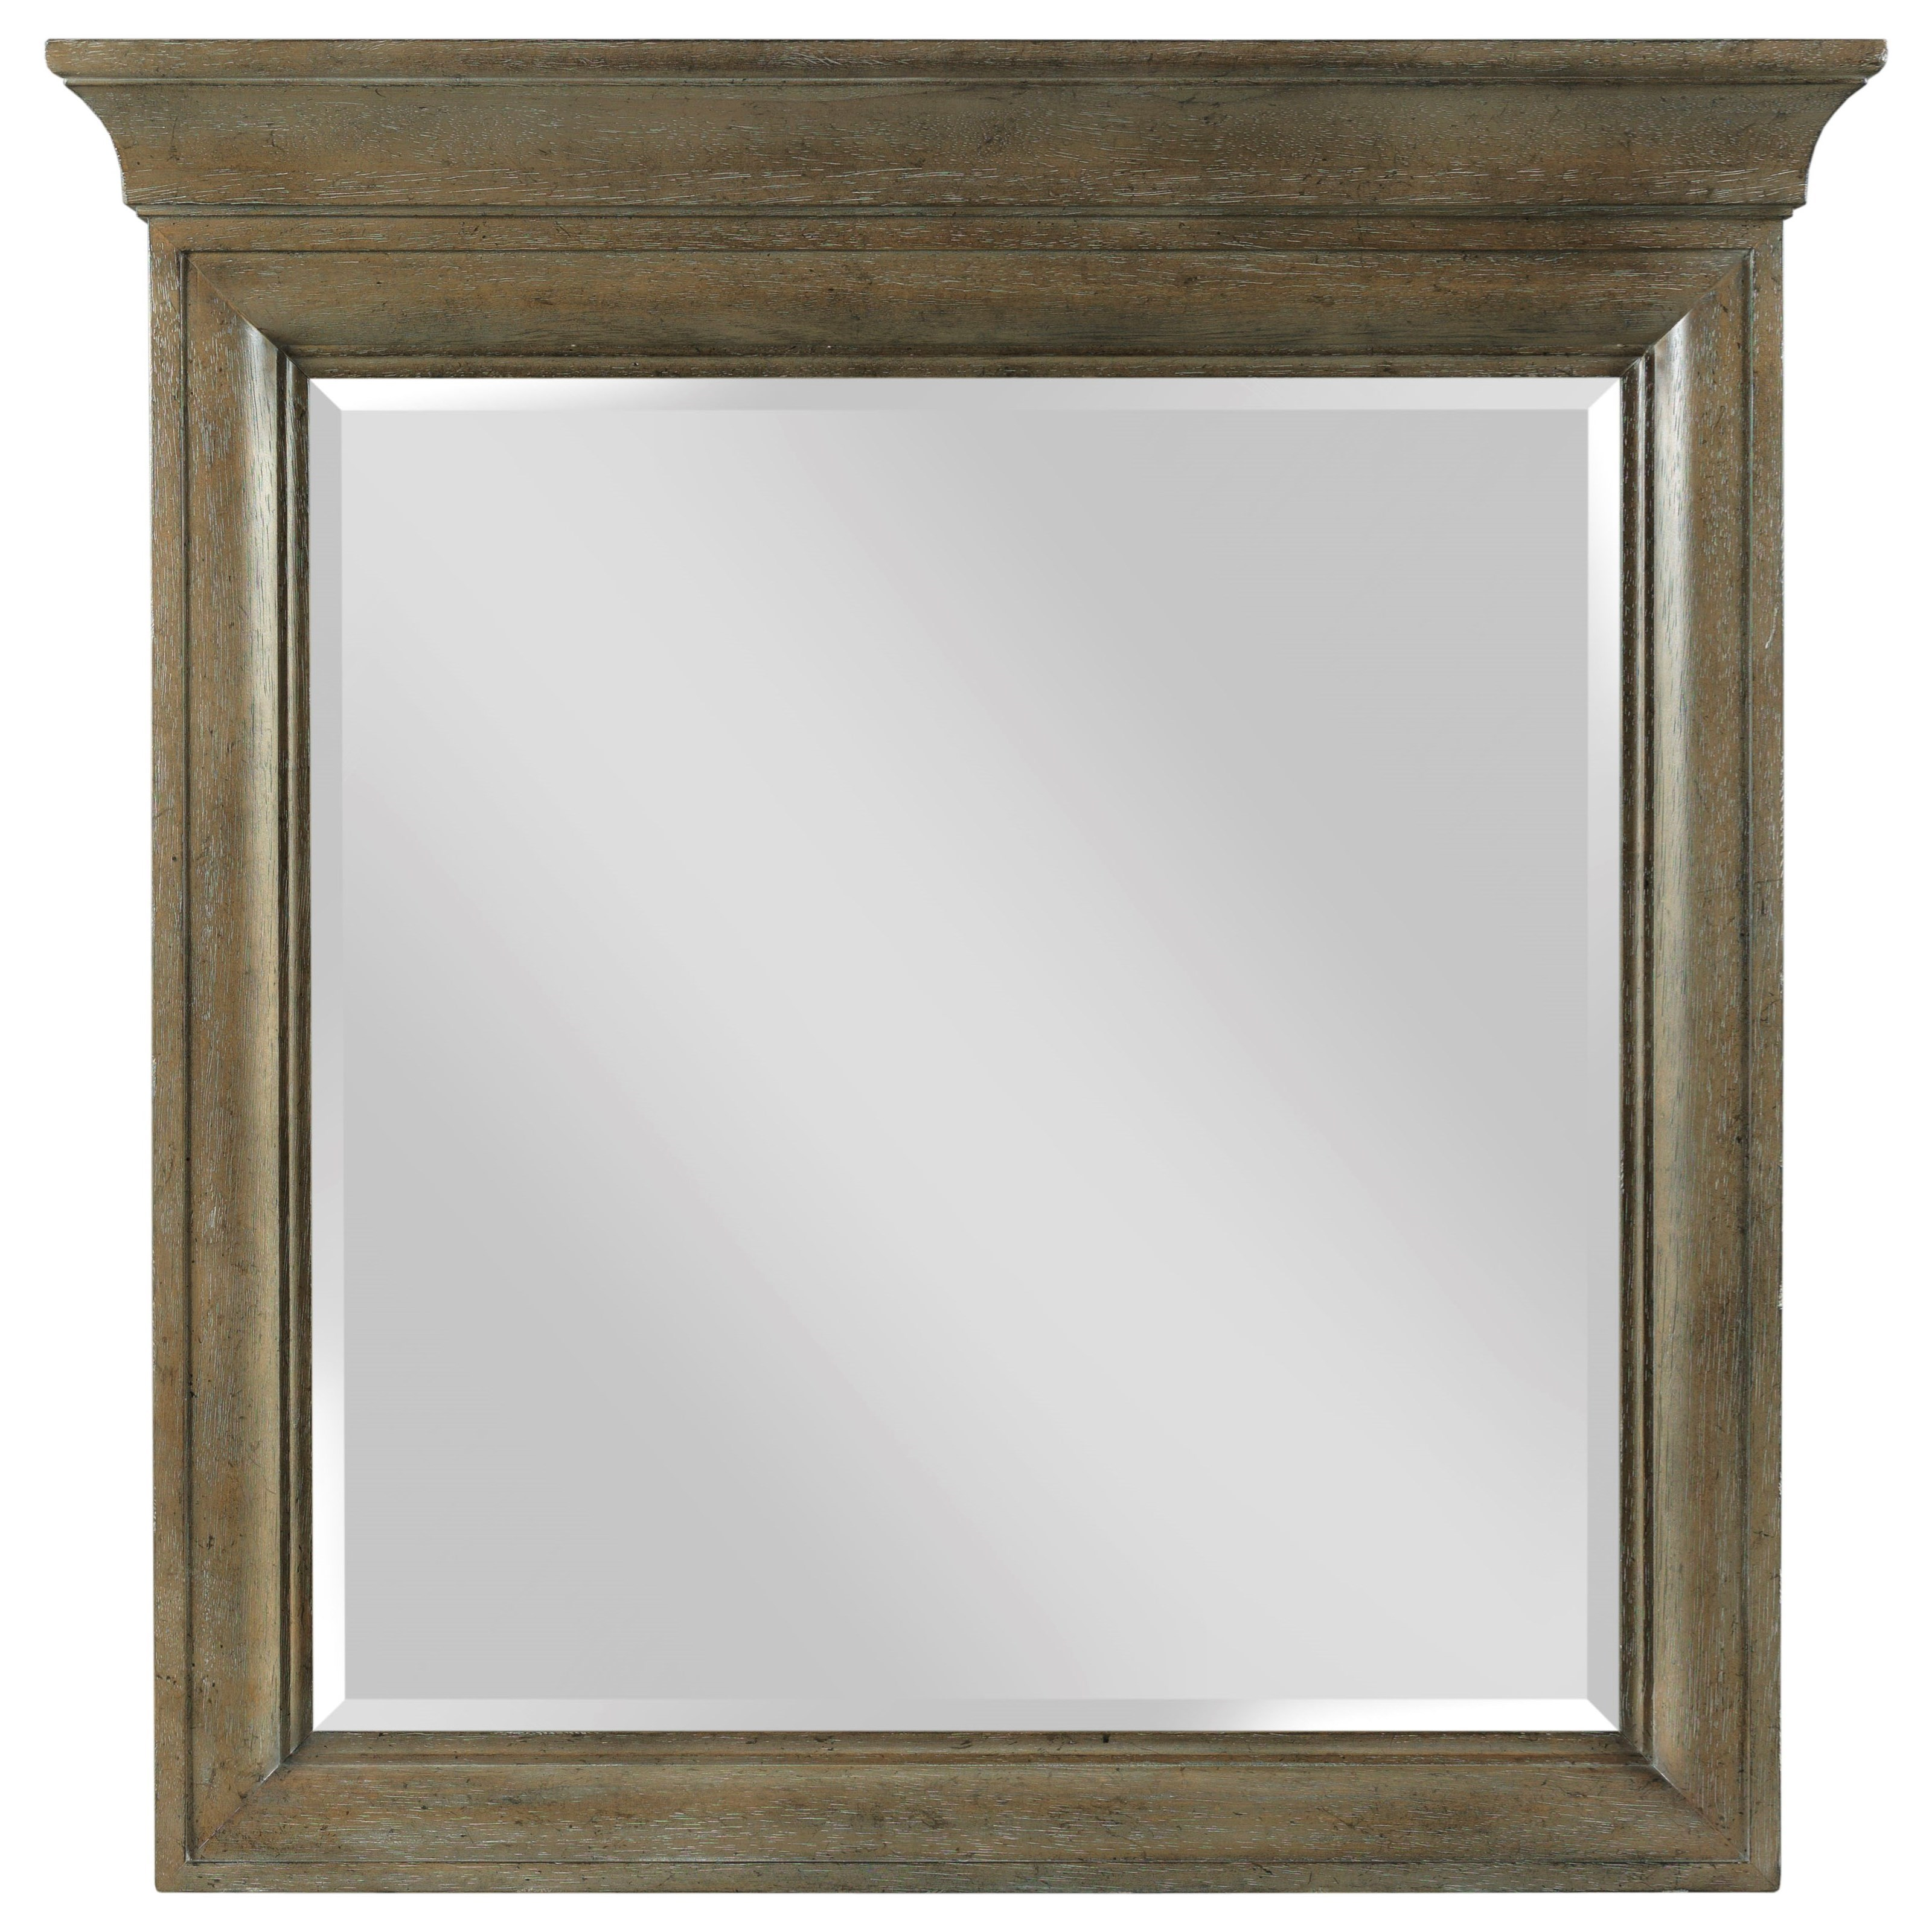 Anson Mirror by American Drew at Value City Furniture